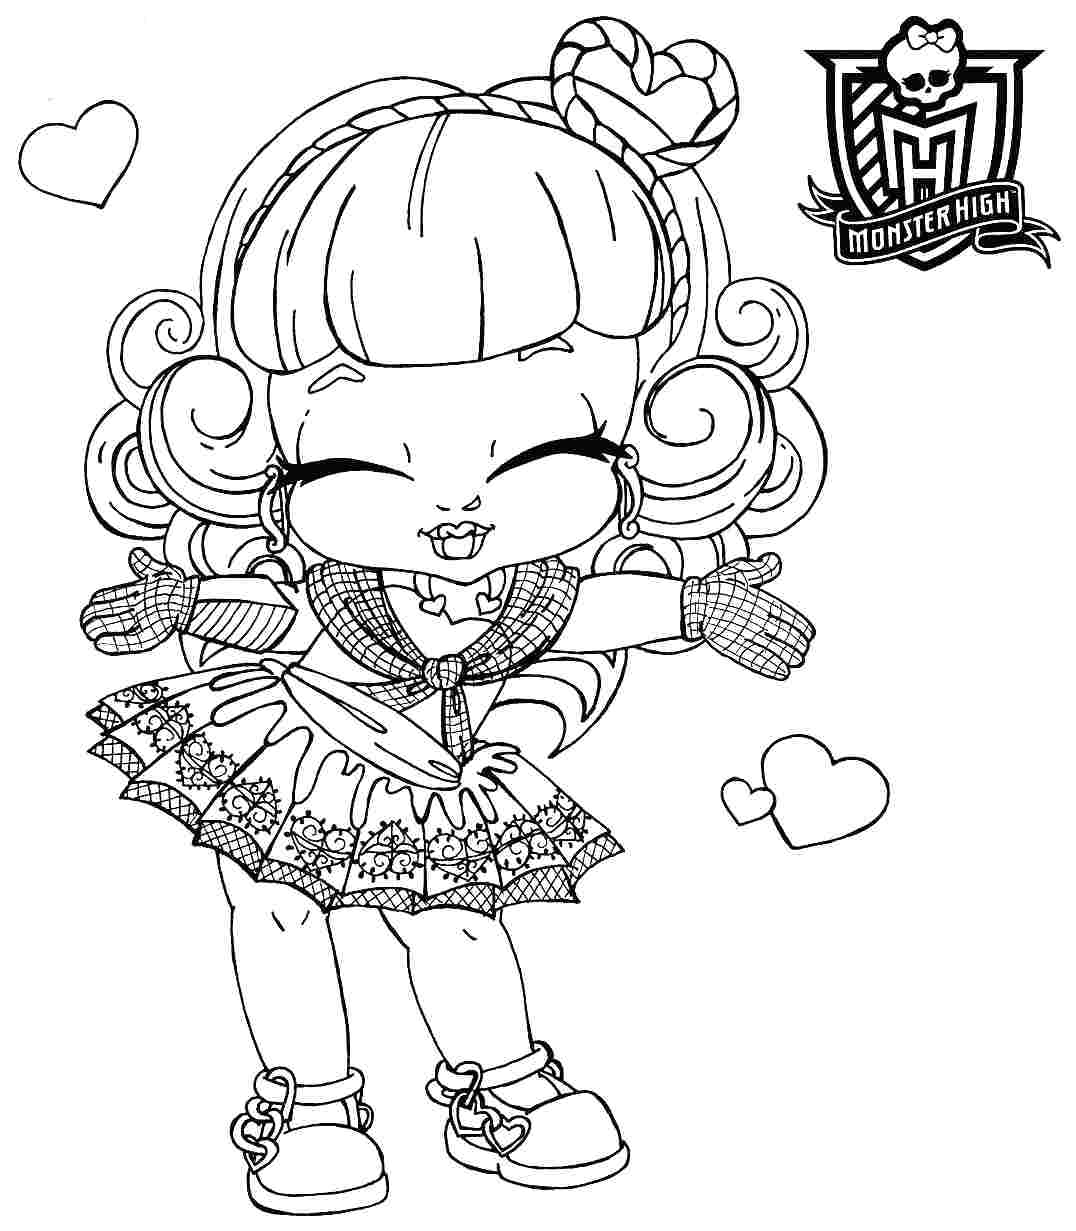 Monster High Baby Coloring Pages 012 to Coloring Pages Collection Of Monster High Baby Coloring Pages 012 to Coloring Pages Collection